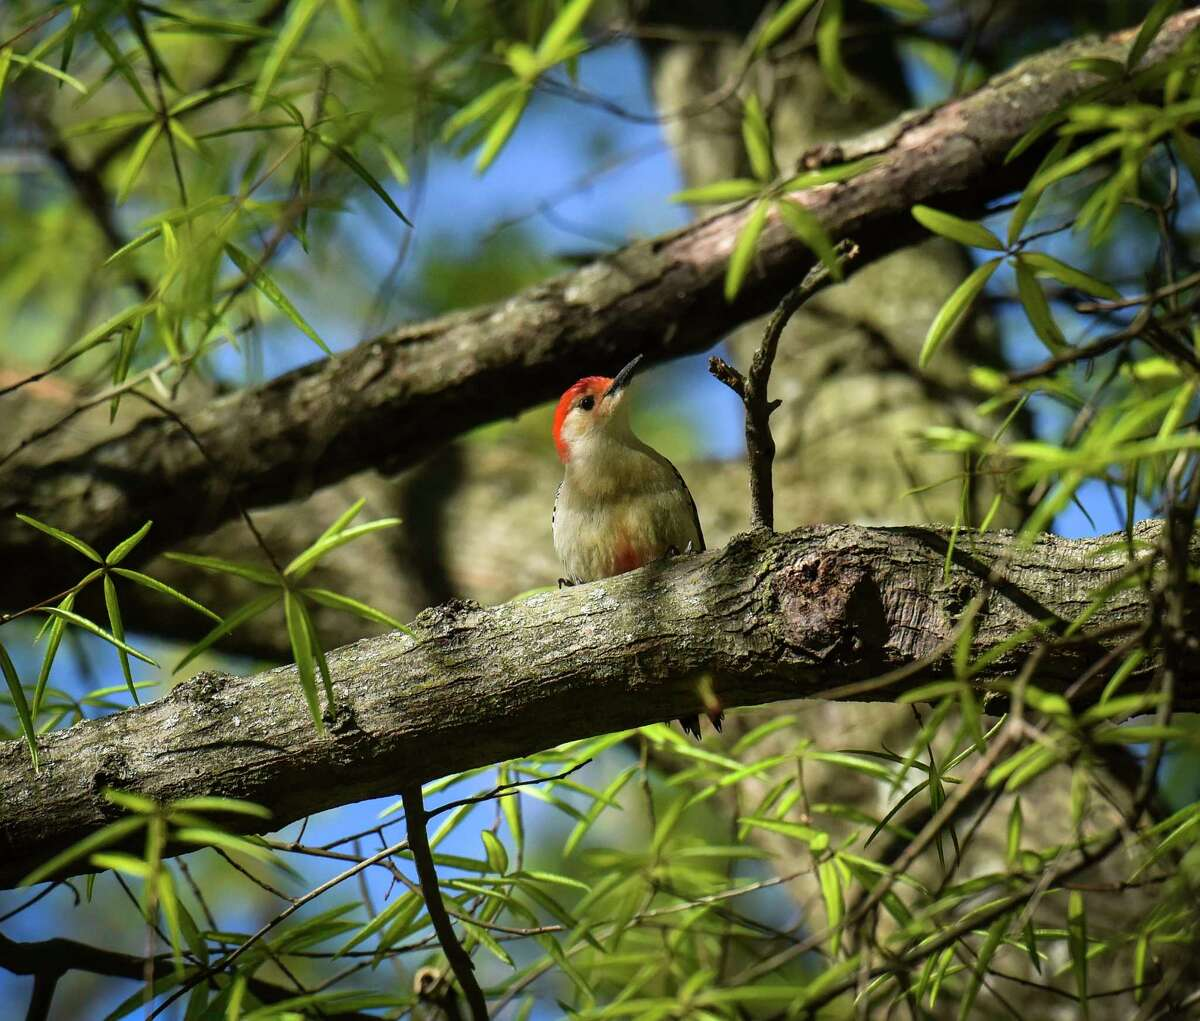 A red-bellied woodpecker in the District of Columbia's Rock Creek Park. The eBird Project blends birdwatchers' sightings with satellite photos and data about many species. The combination produces precise digital maps predicting when and where threatened and endangered birds migrate.